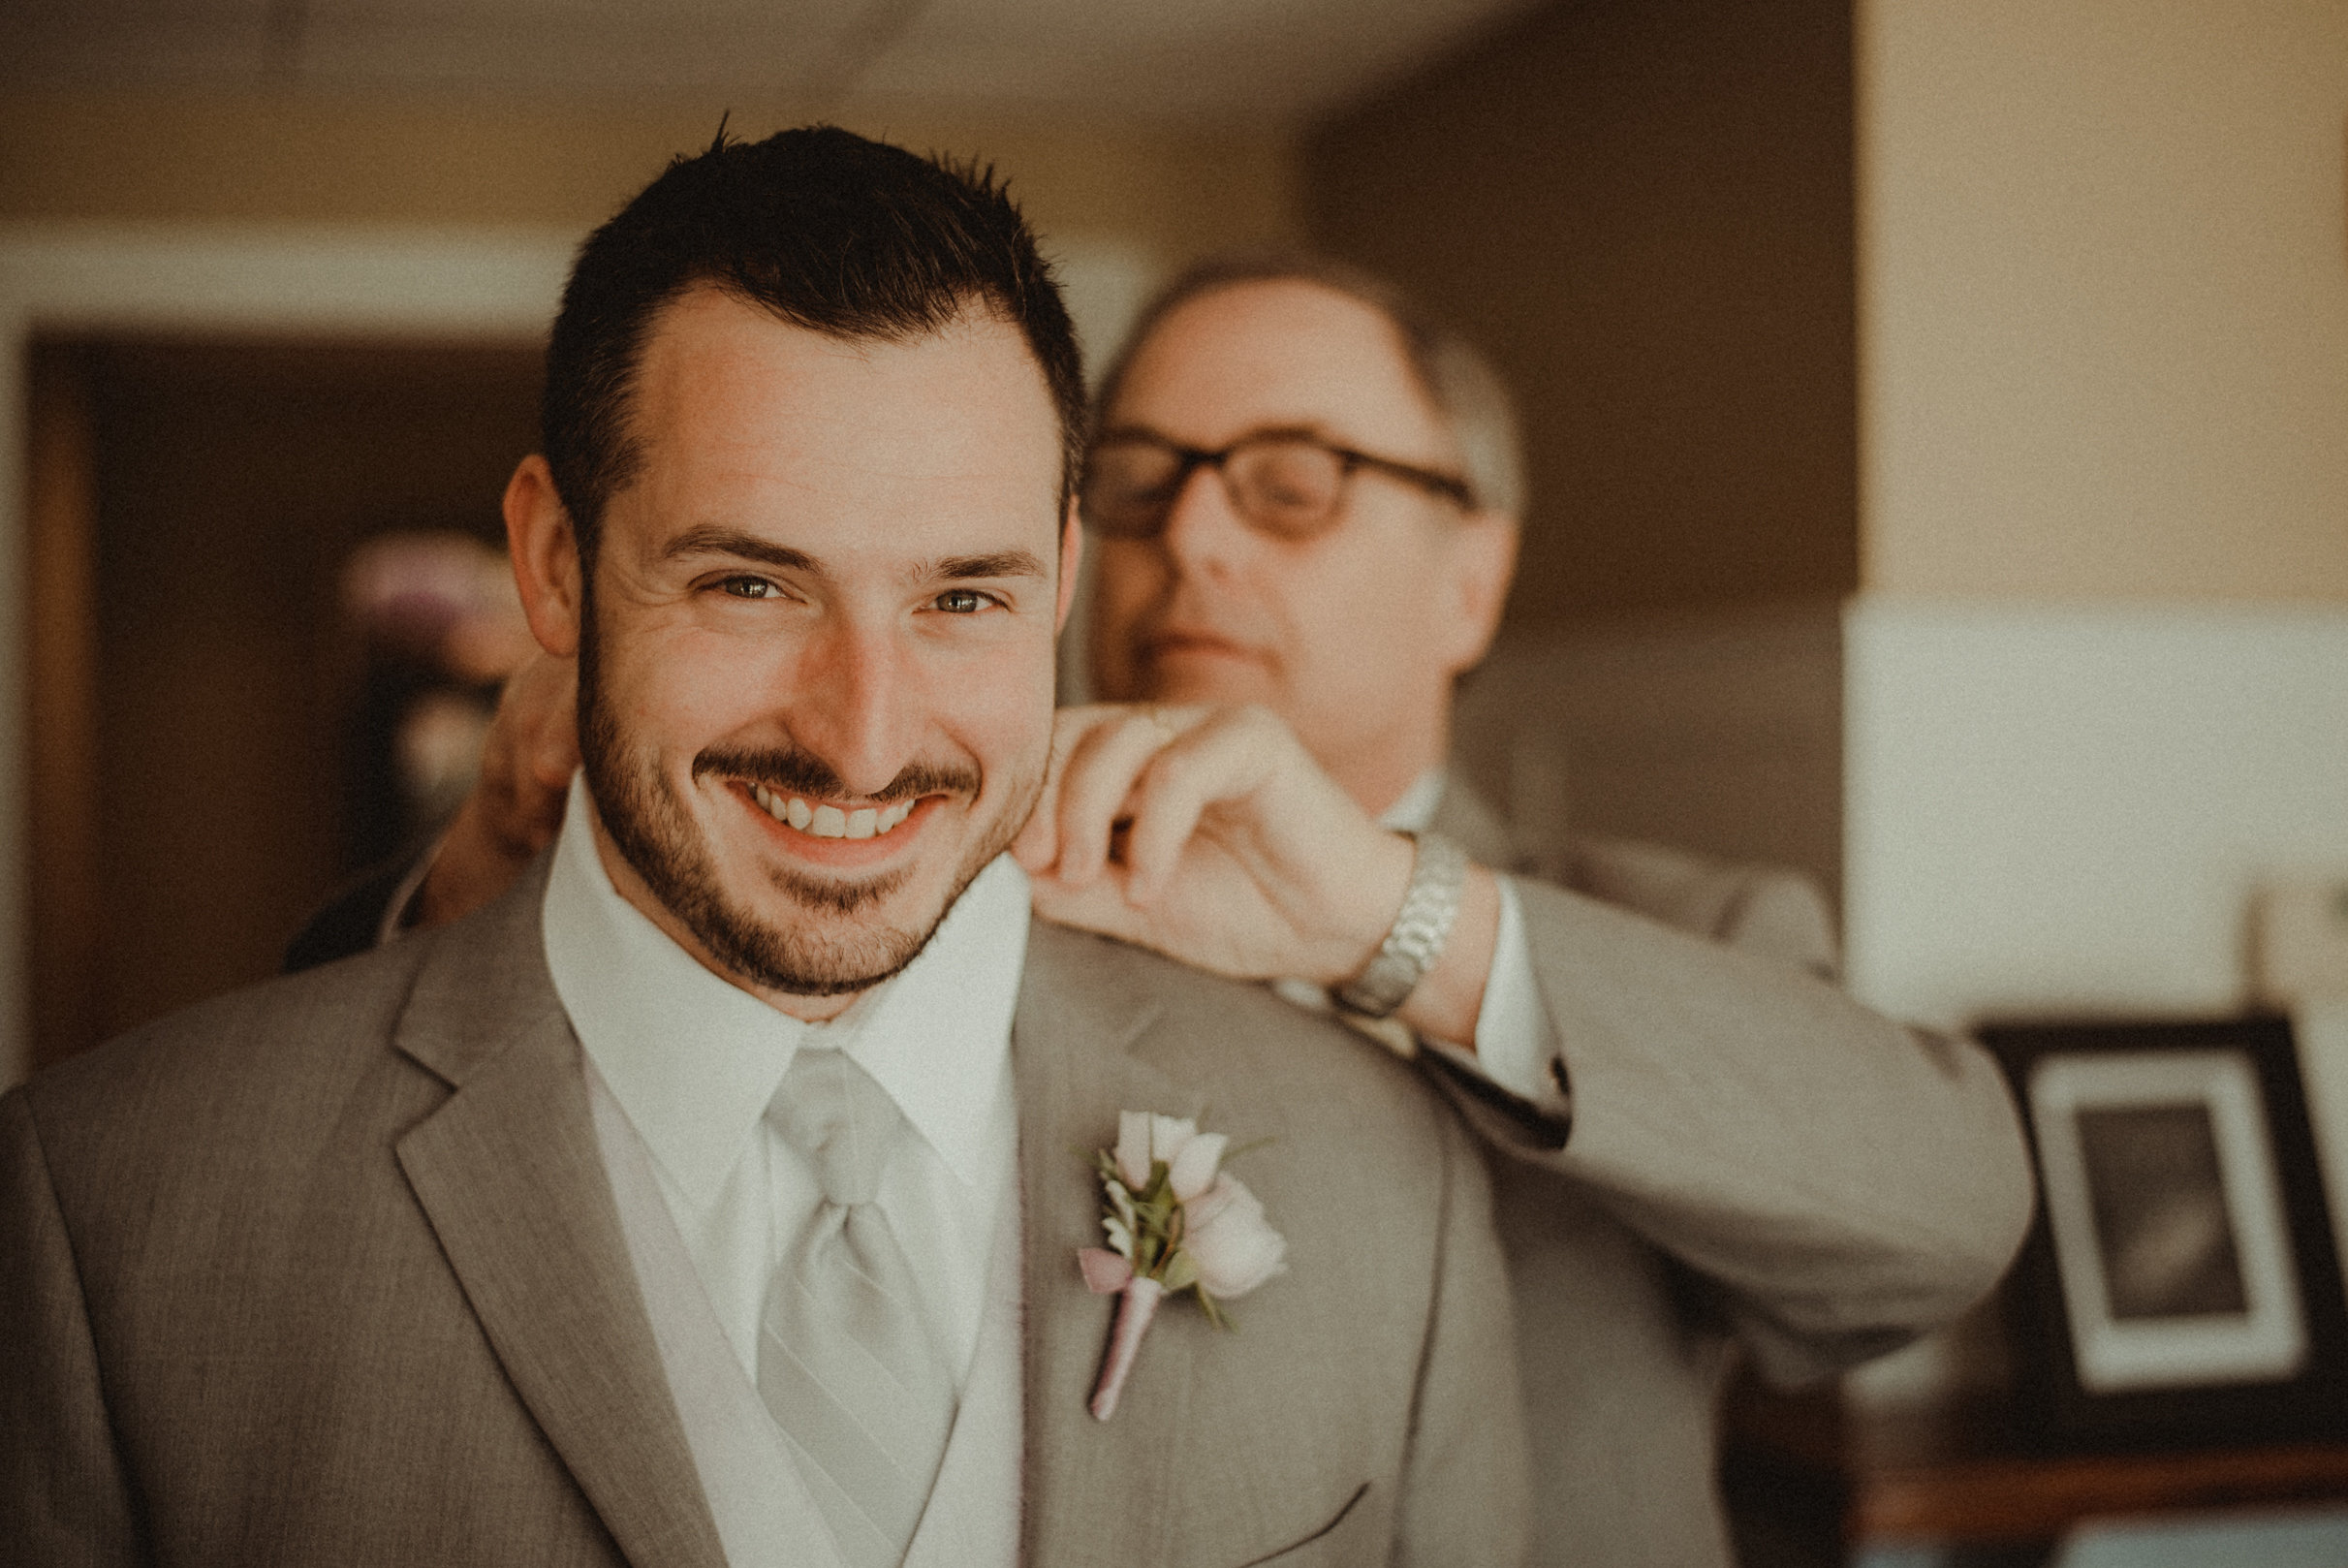 Groom's father helping with tie